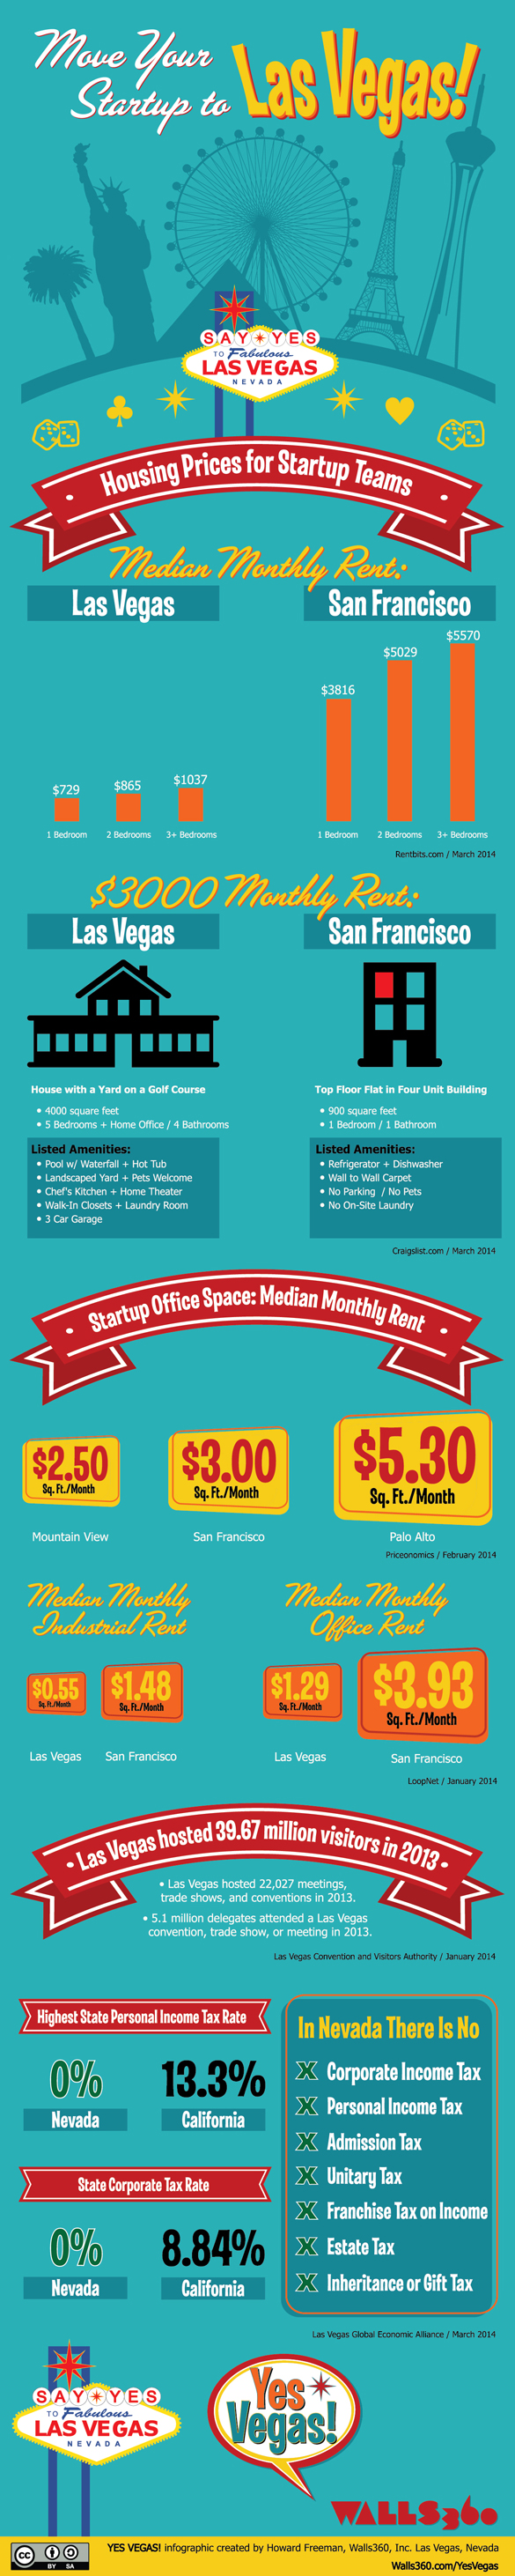 YES VEGAS! Infographic from Walls360: Thinking About Moving Your Startup to Las Vegas?